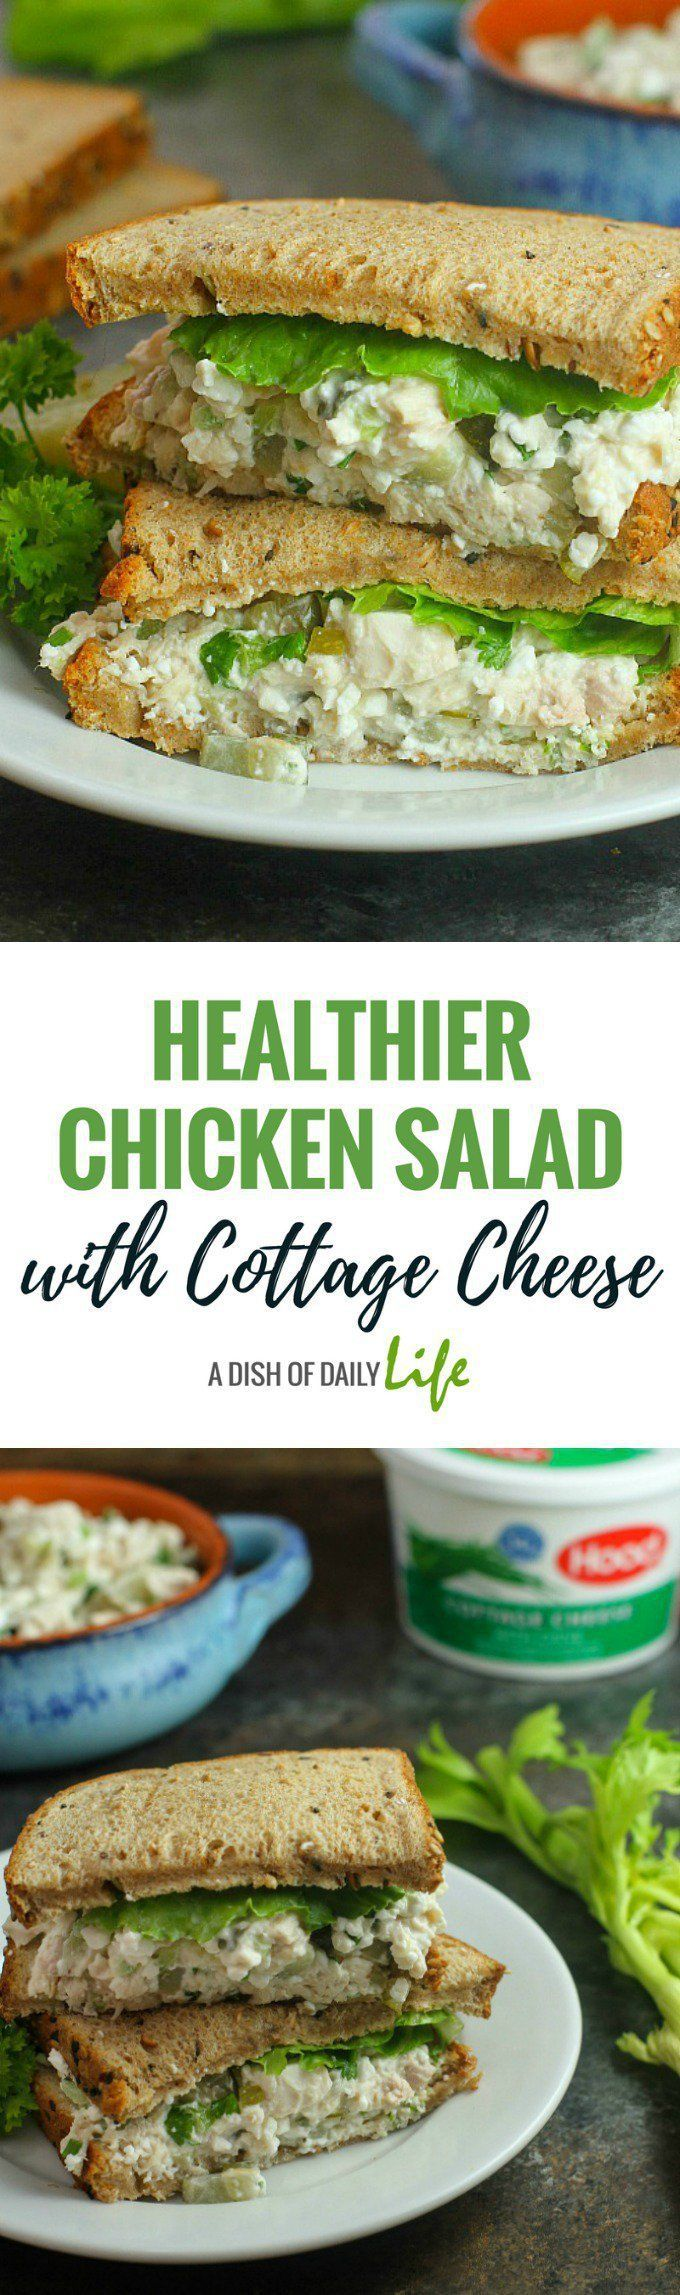 This delicious traditional chicken salad recipe gets an added boost of protein from cottage cheese. Your family will love this healthy makeover. Perfect for lunch or a post workout snack! #ad @HPHood